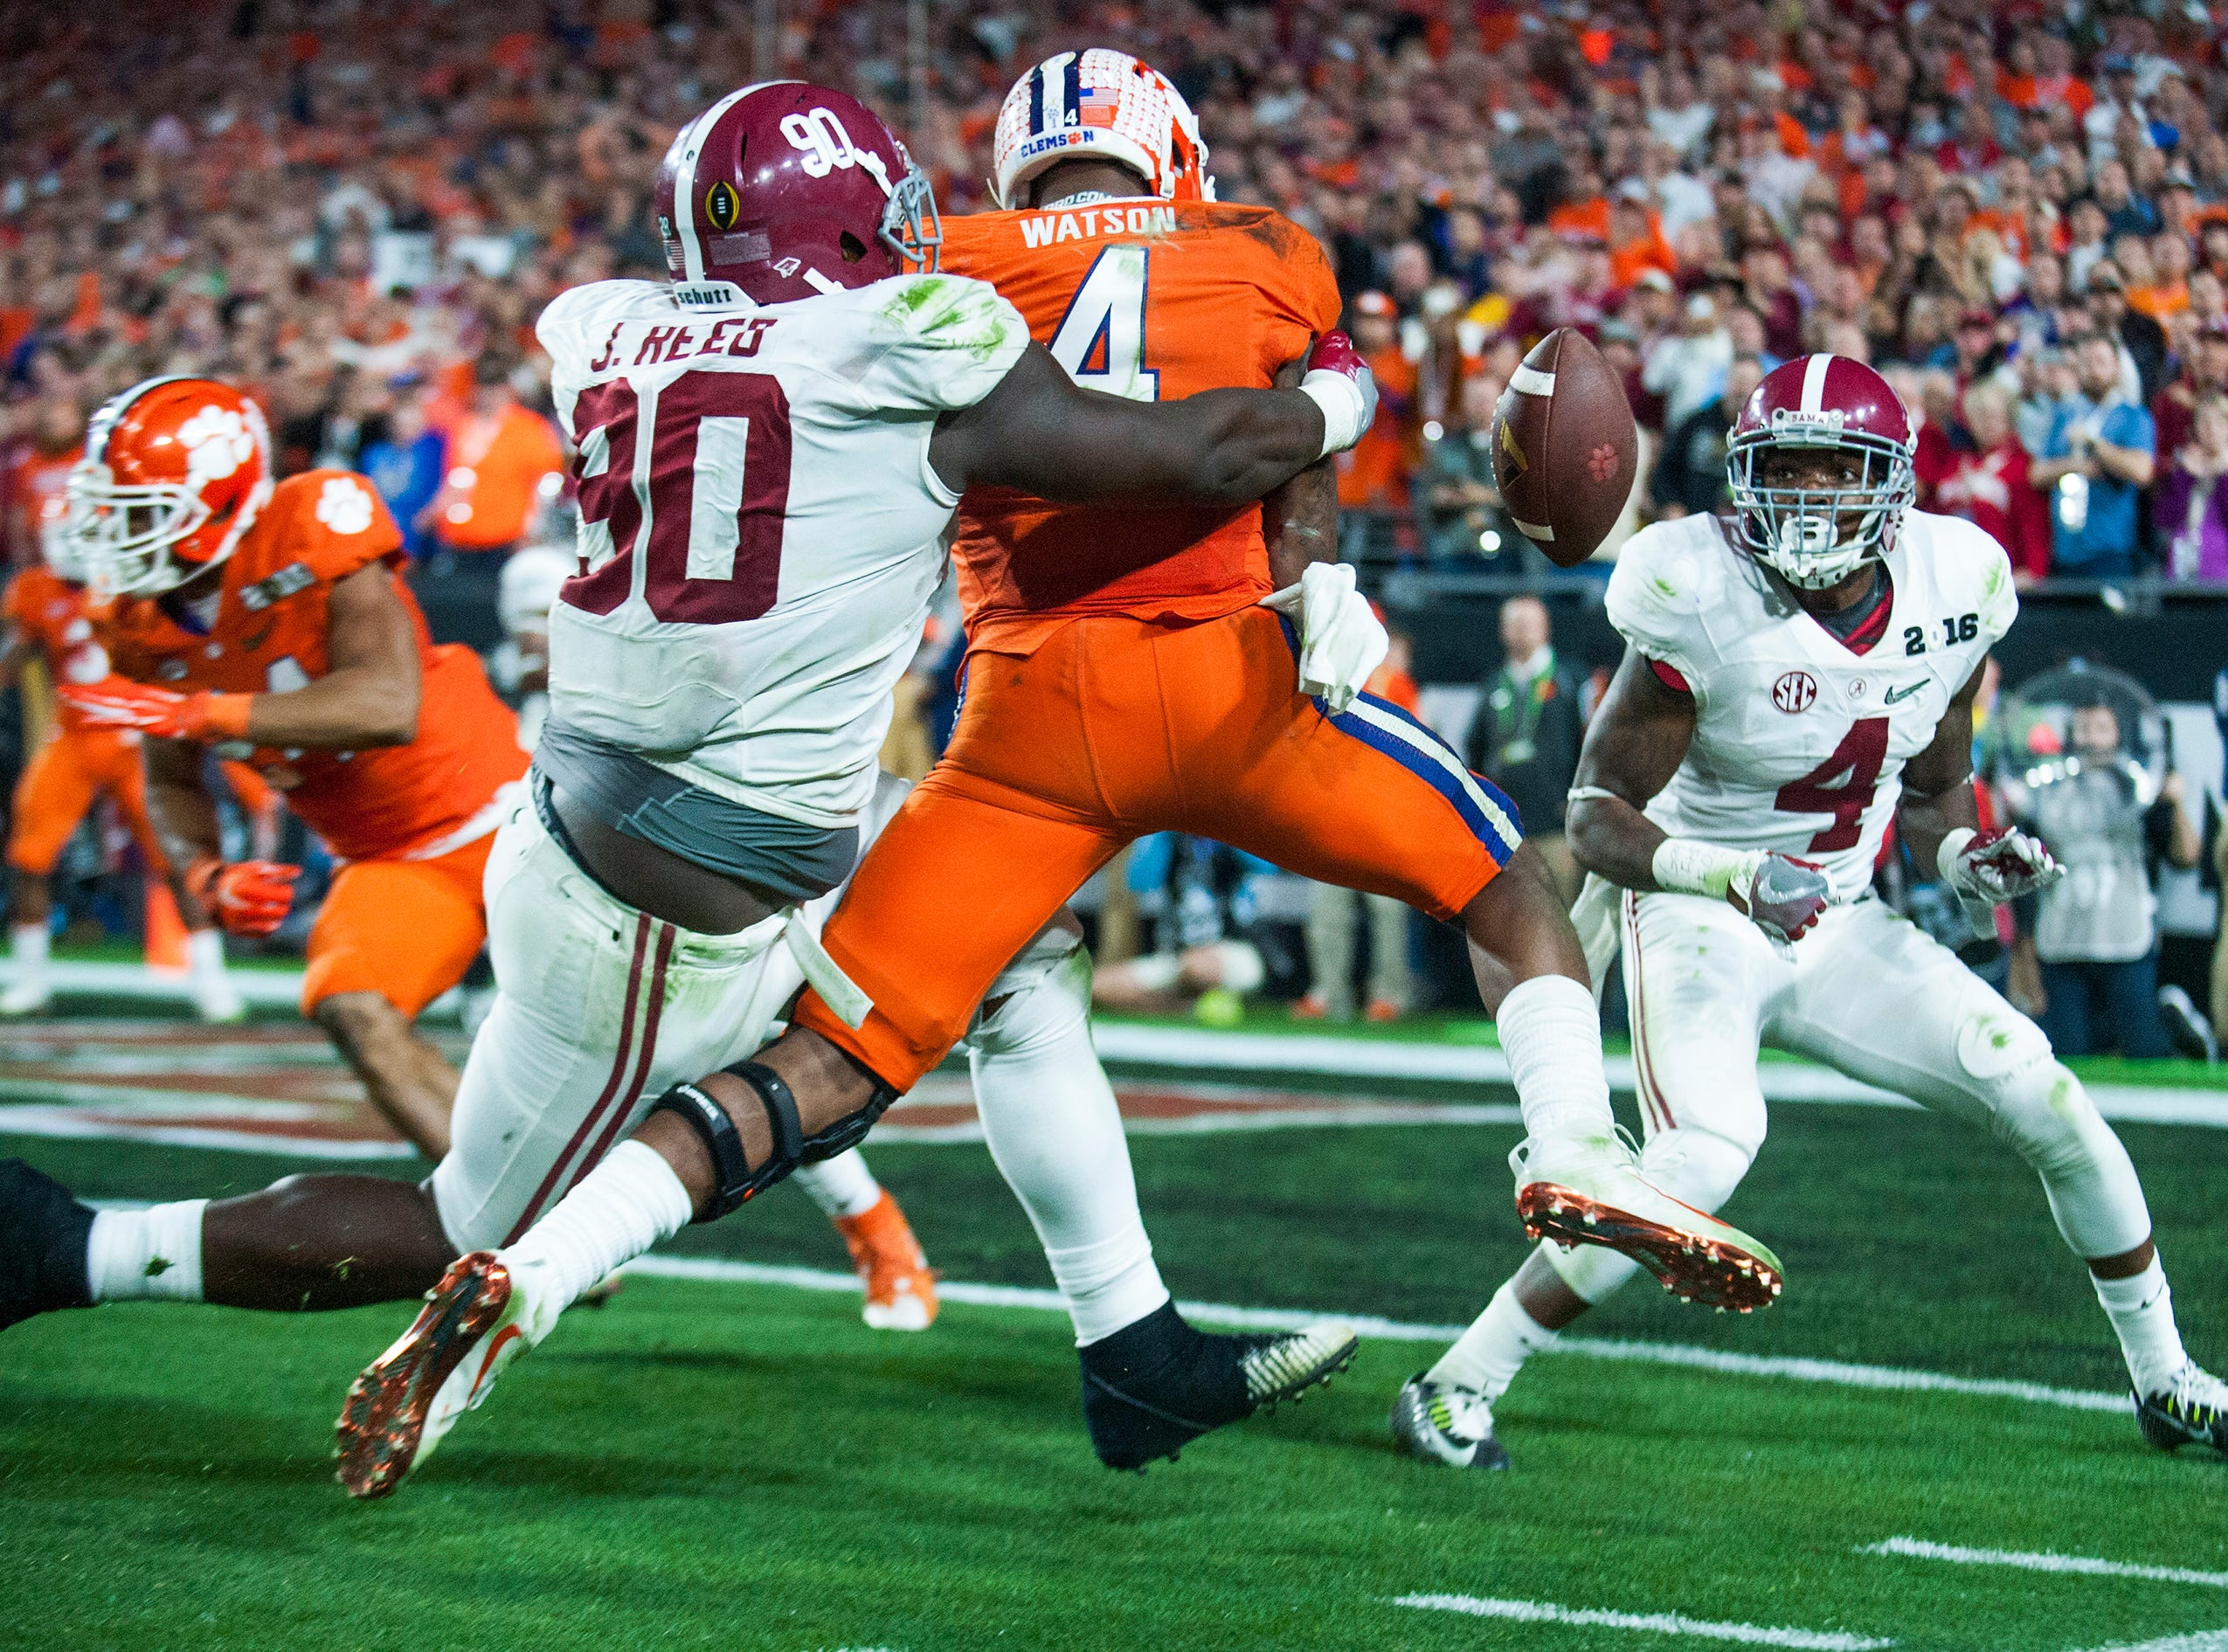 Alabama defensive lineman Jarran Reed (90) stops Clemson quarterback Deshaun Watson (4)  short of the goal line on a two point conversion attempt in the College Football Playoff Championship Game on Monday January 11, 2016 at University of Phoenix Stadium in Glendale, Az.